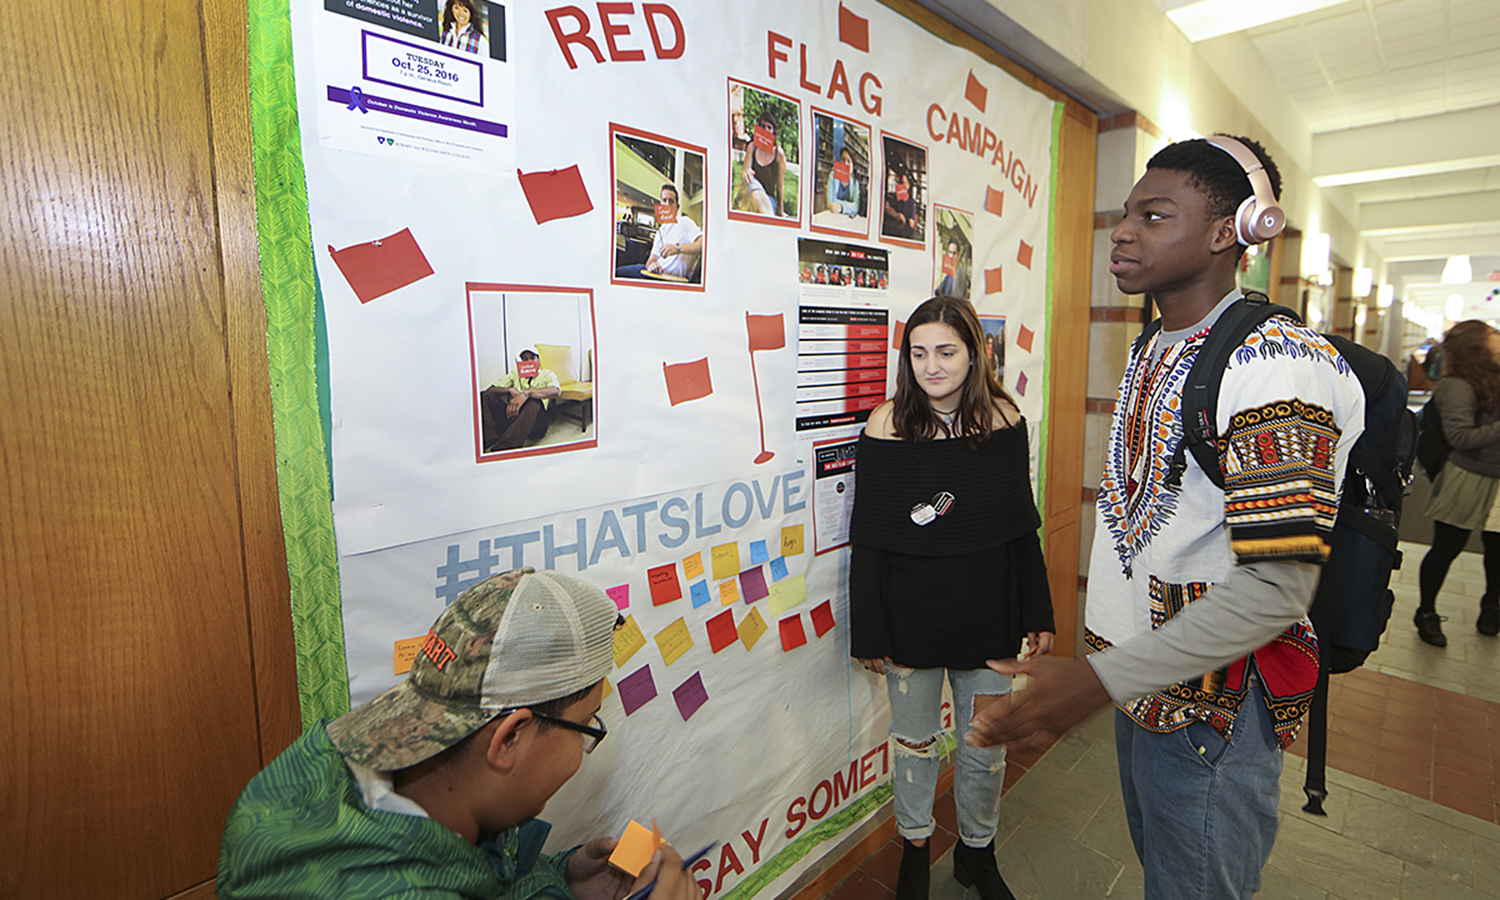 Maria Moreau '19, Henry Castillo '20 and Israel Oyedapo '20 encourage students in Scandlng Campus Center to write a message educating, empowering and activating the community to recognize unhealthy relationships through the One Love Foundation.